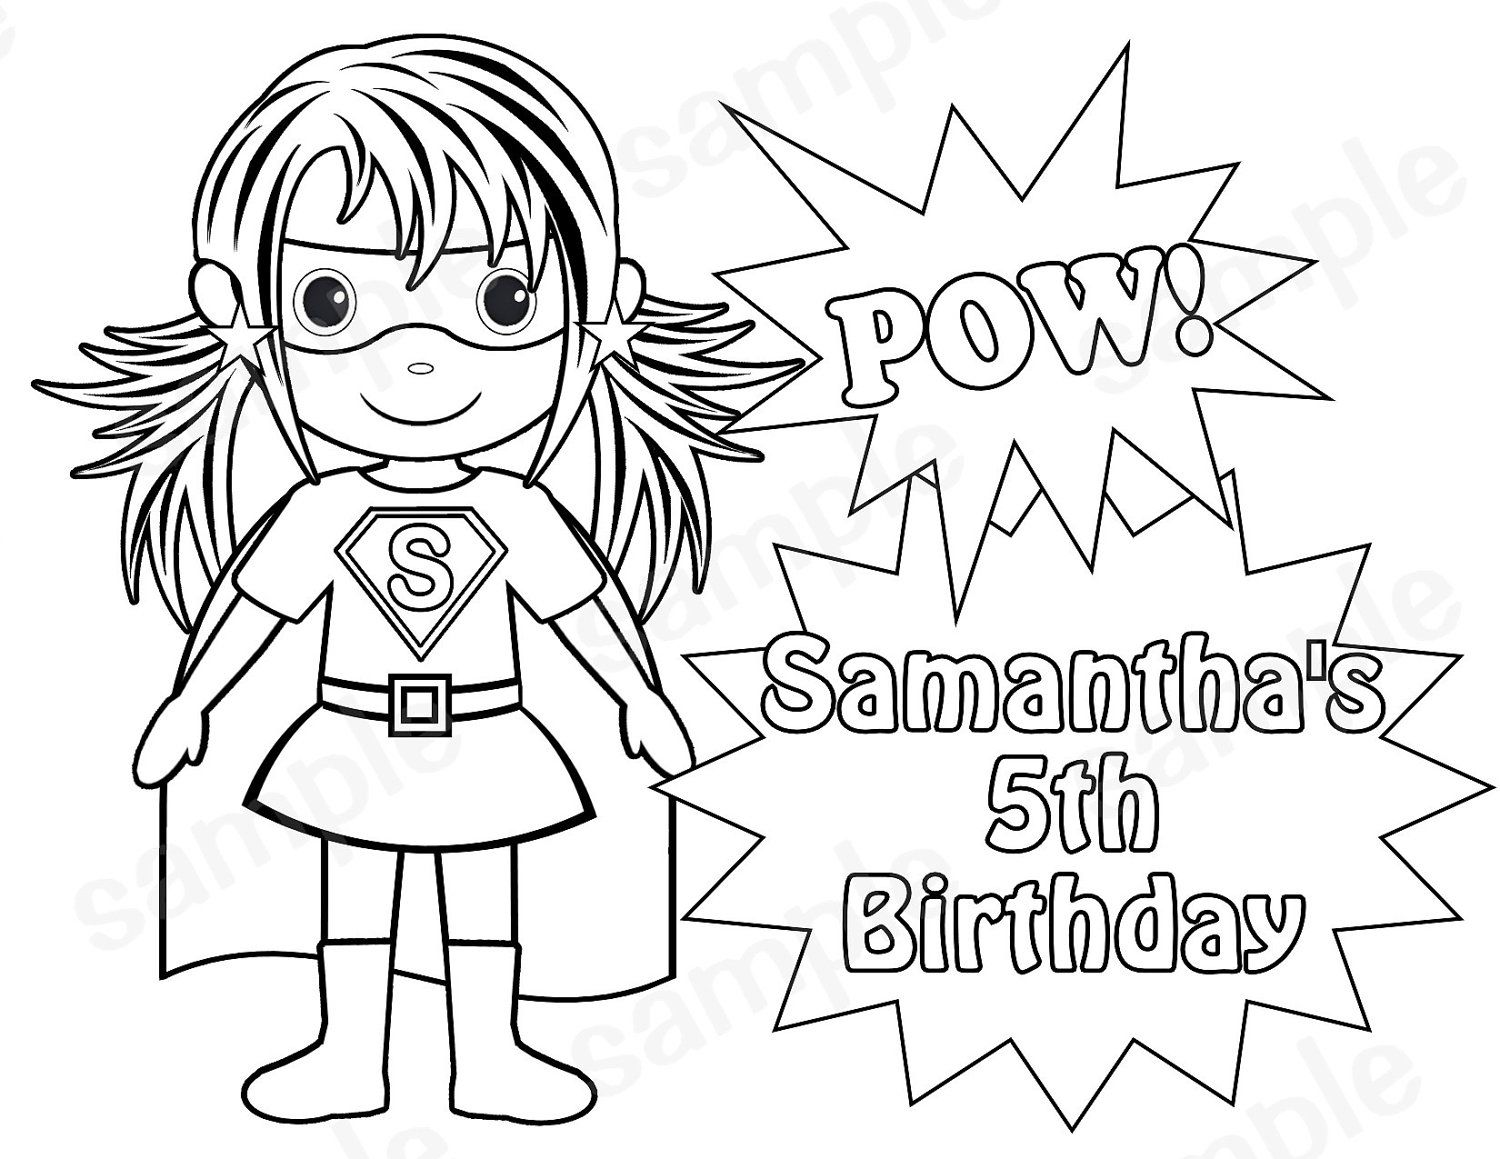 Best Superhero Coloring Pages Printable Superhero | coloring_pages ...